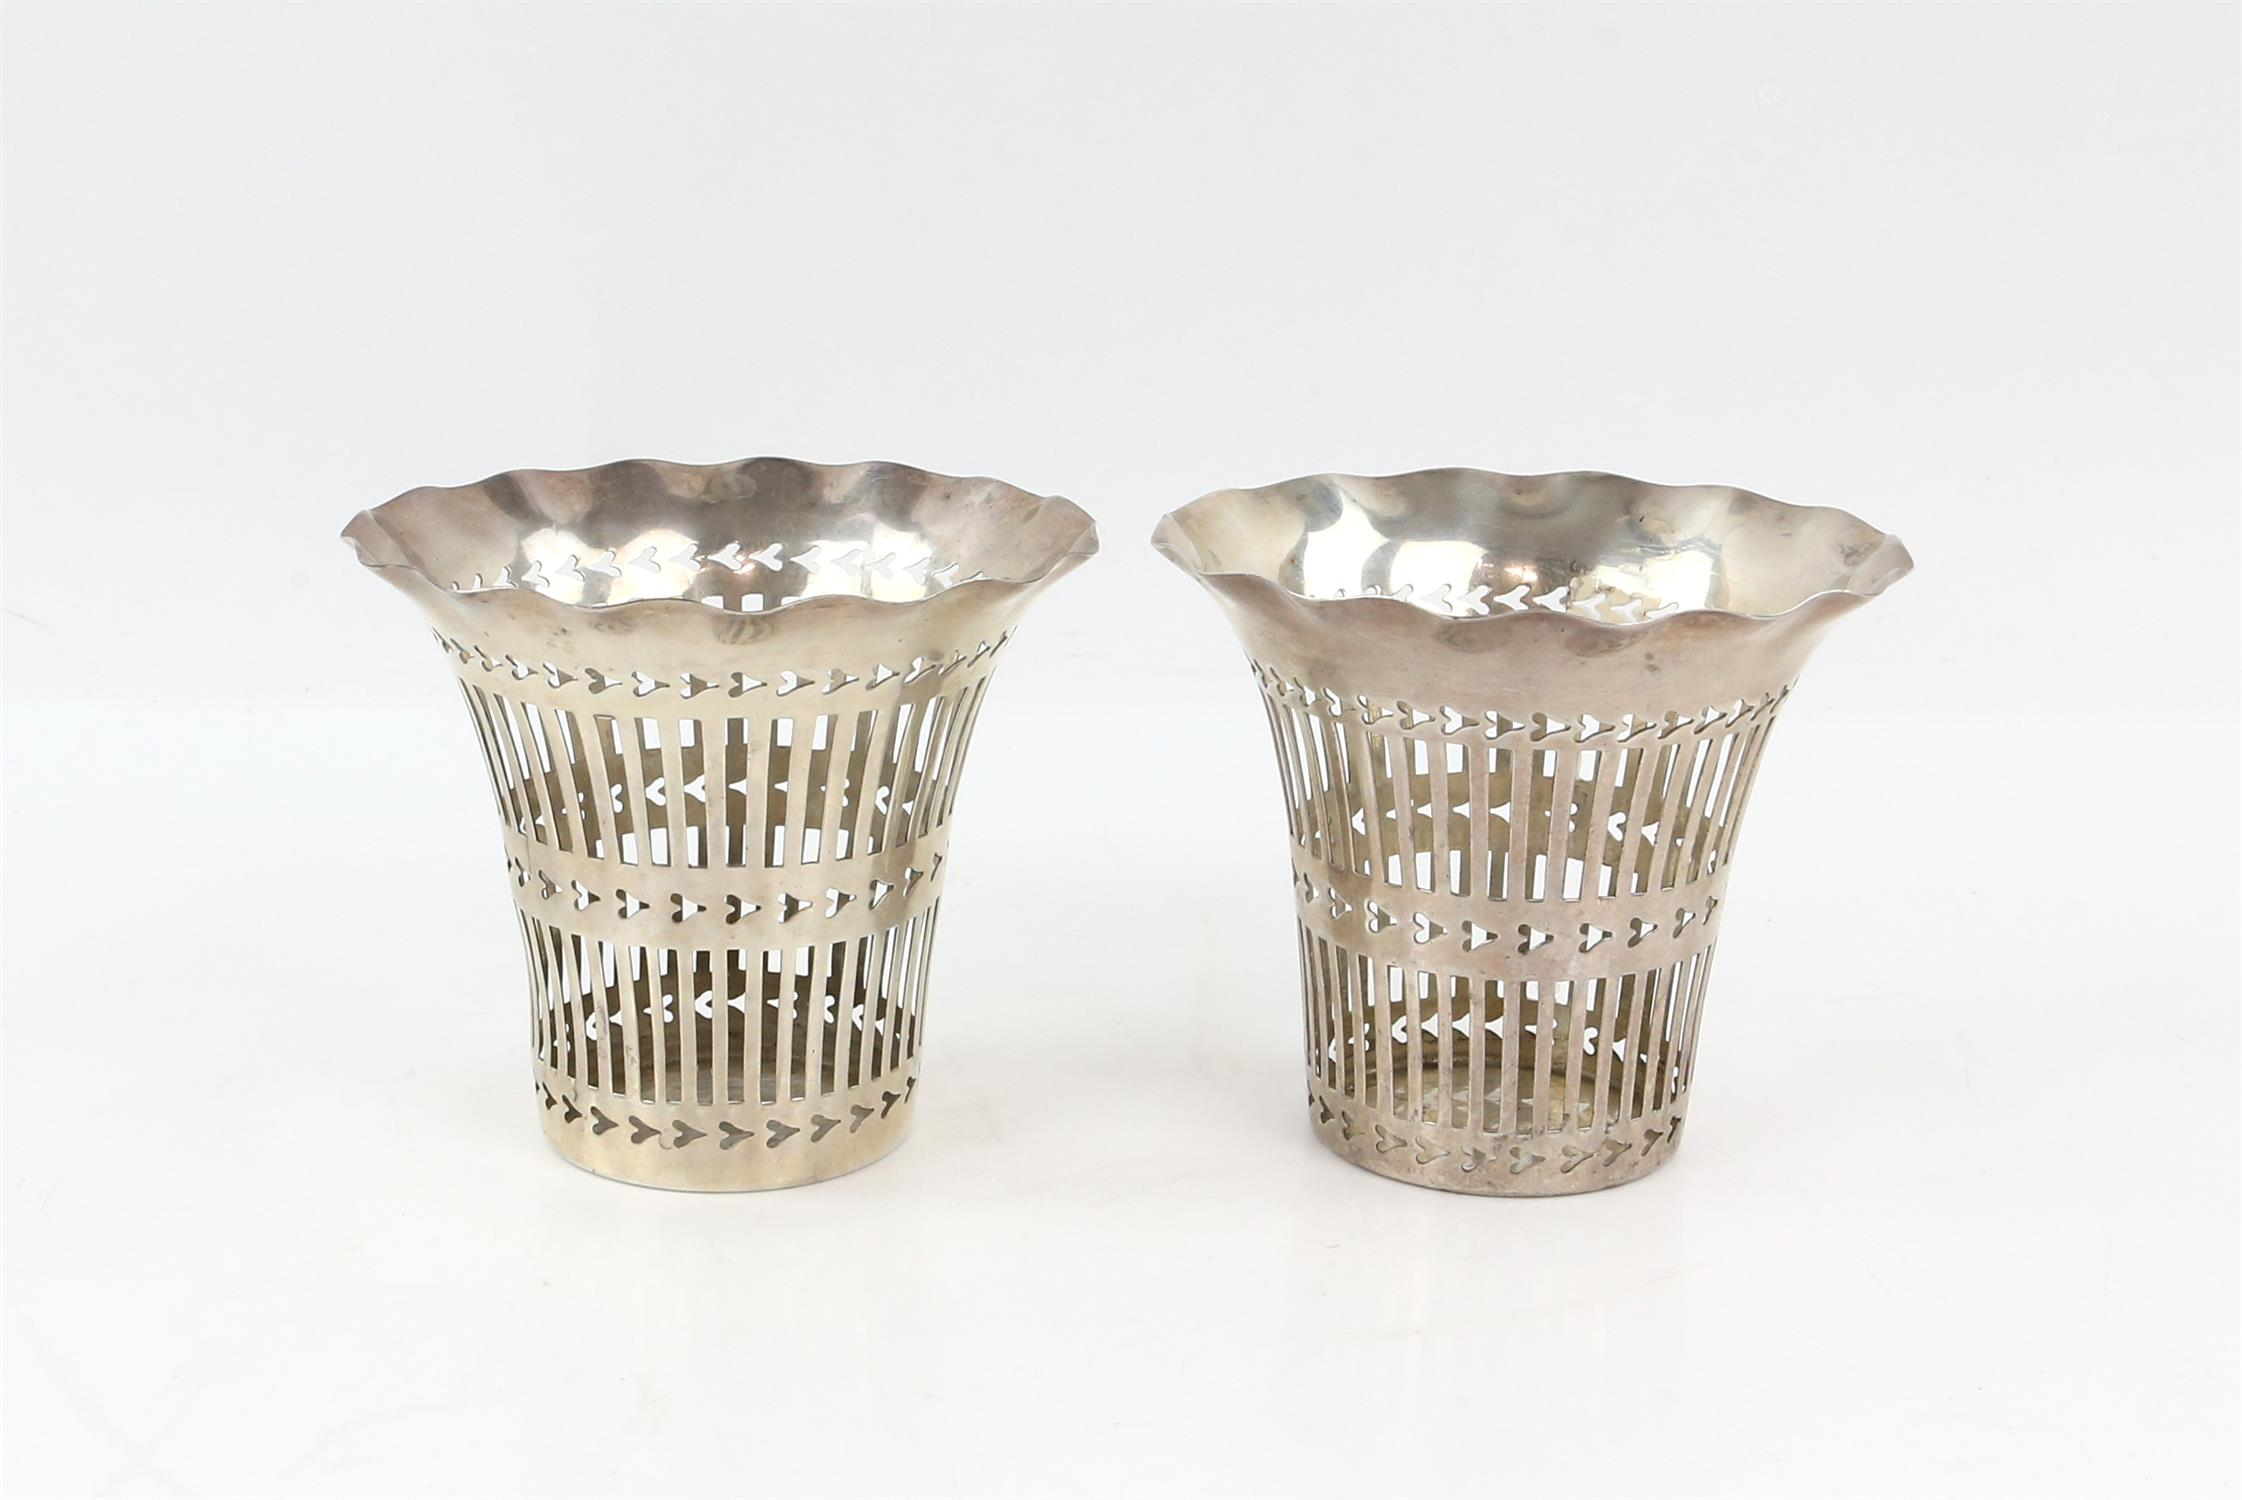 Edward VII pair of pierced silver vases by Cohen & Charles, Birmingham 1902-3, 9 cms high, - Image 2 of 4